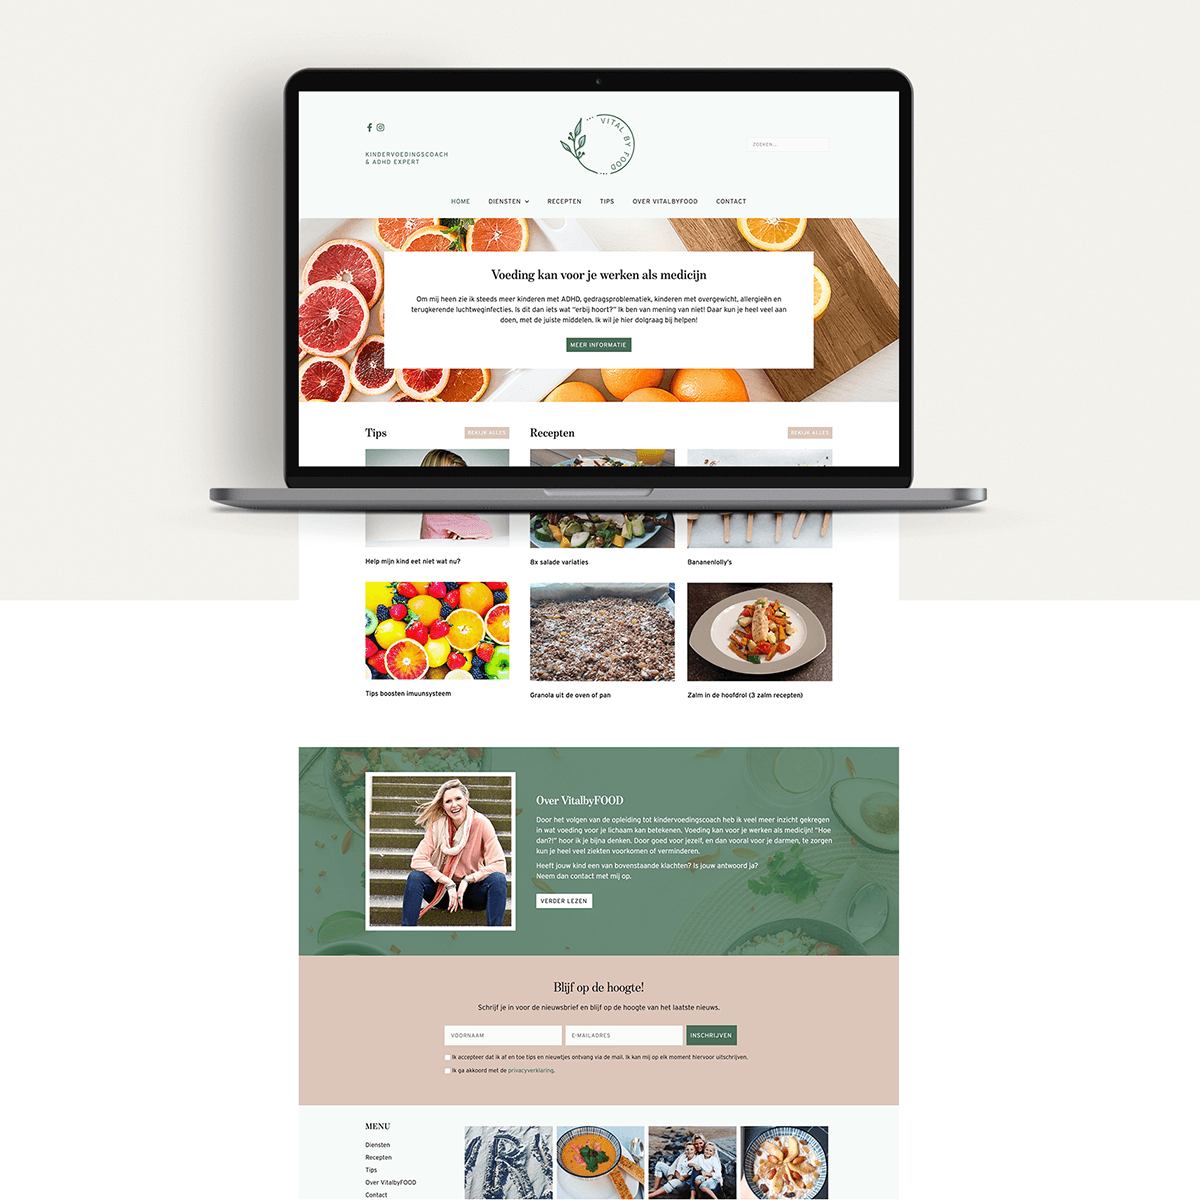 Webdesign - VitalbyFOOD | Eunoia Studio